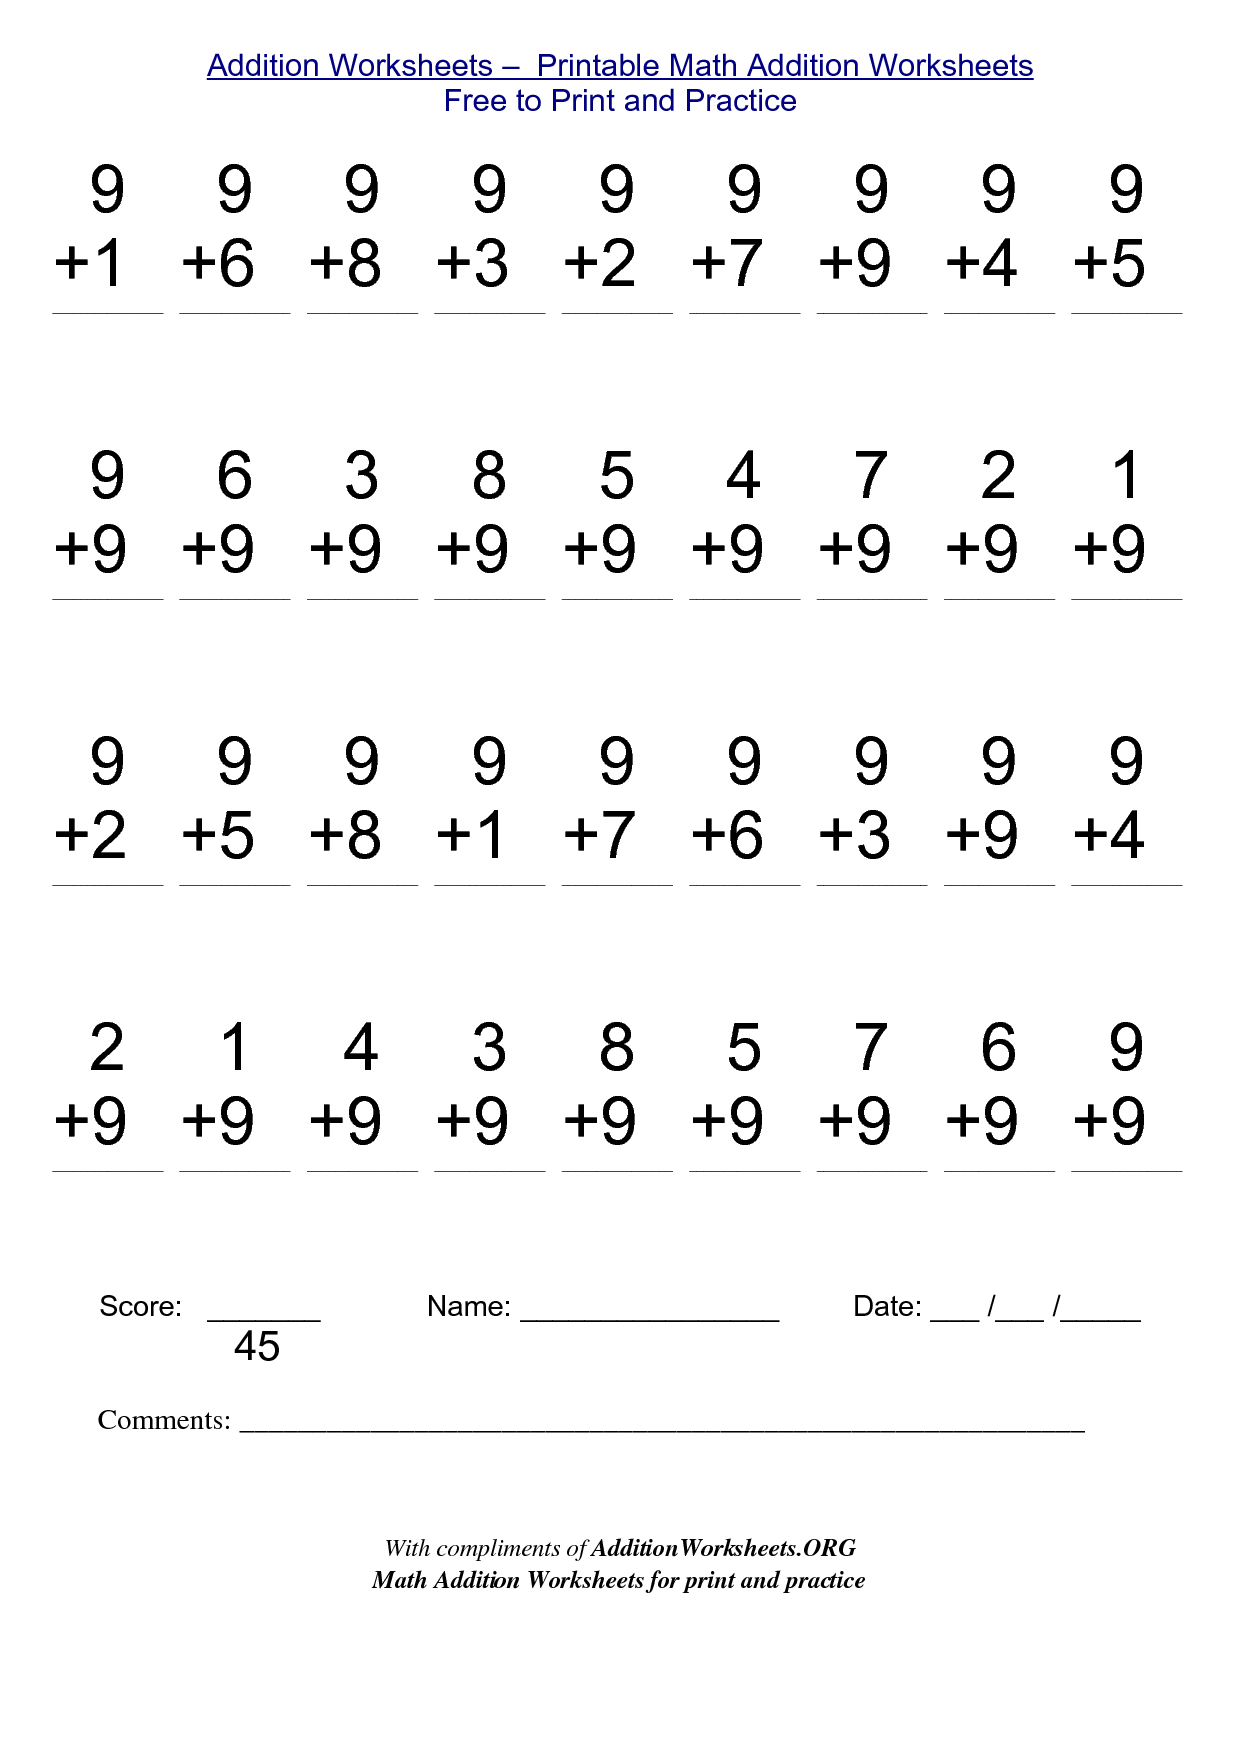 worksheet Printable First Grade Math Worksheets 2nd grade stuff to print addition worksheets printable math free print